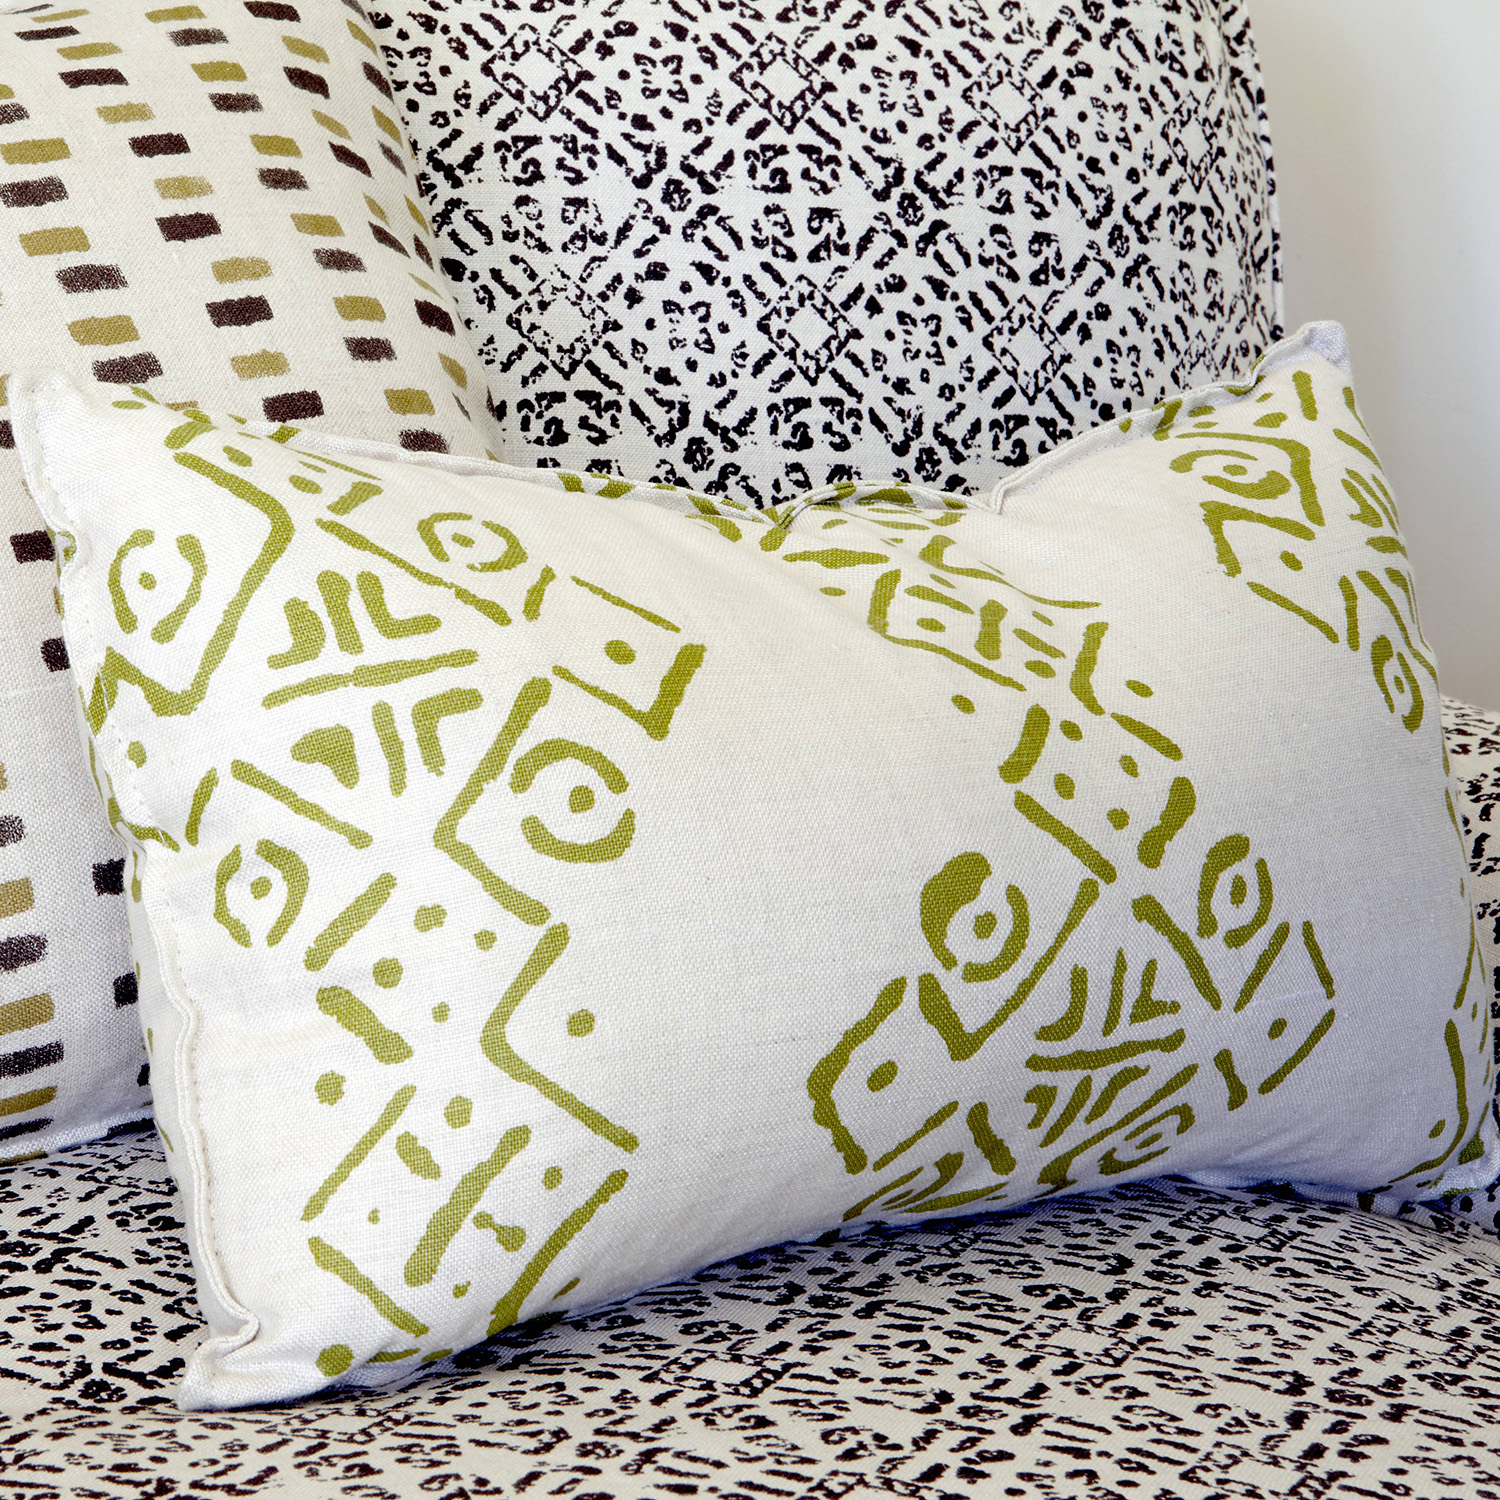 BLITHFIELD_CUSTOM_PRINT_COLLECTION_Bespoke cushions_2.jpg